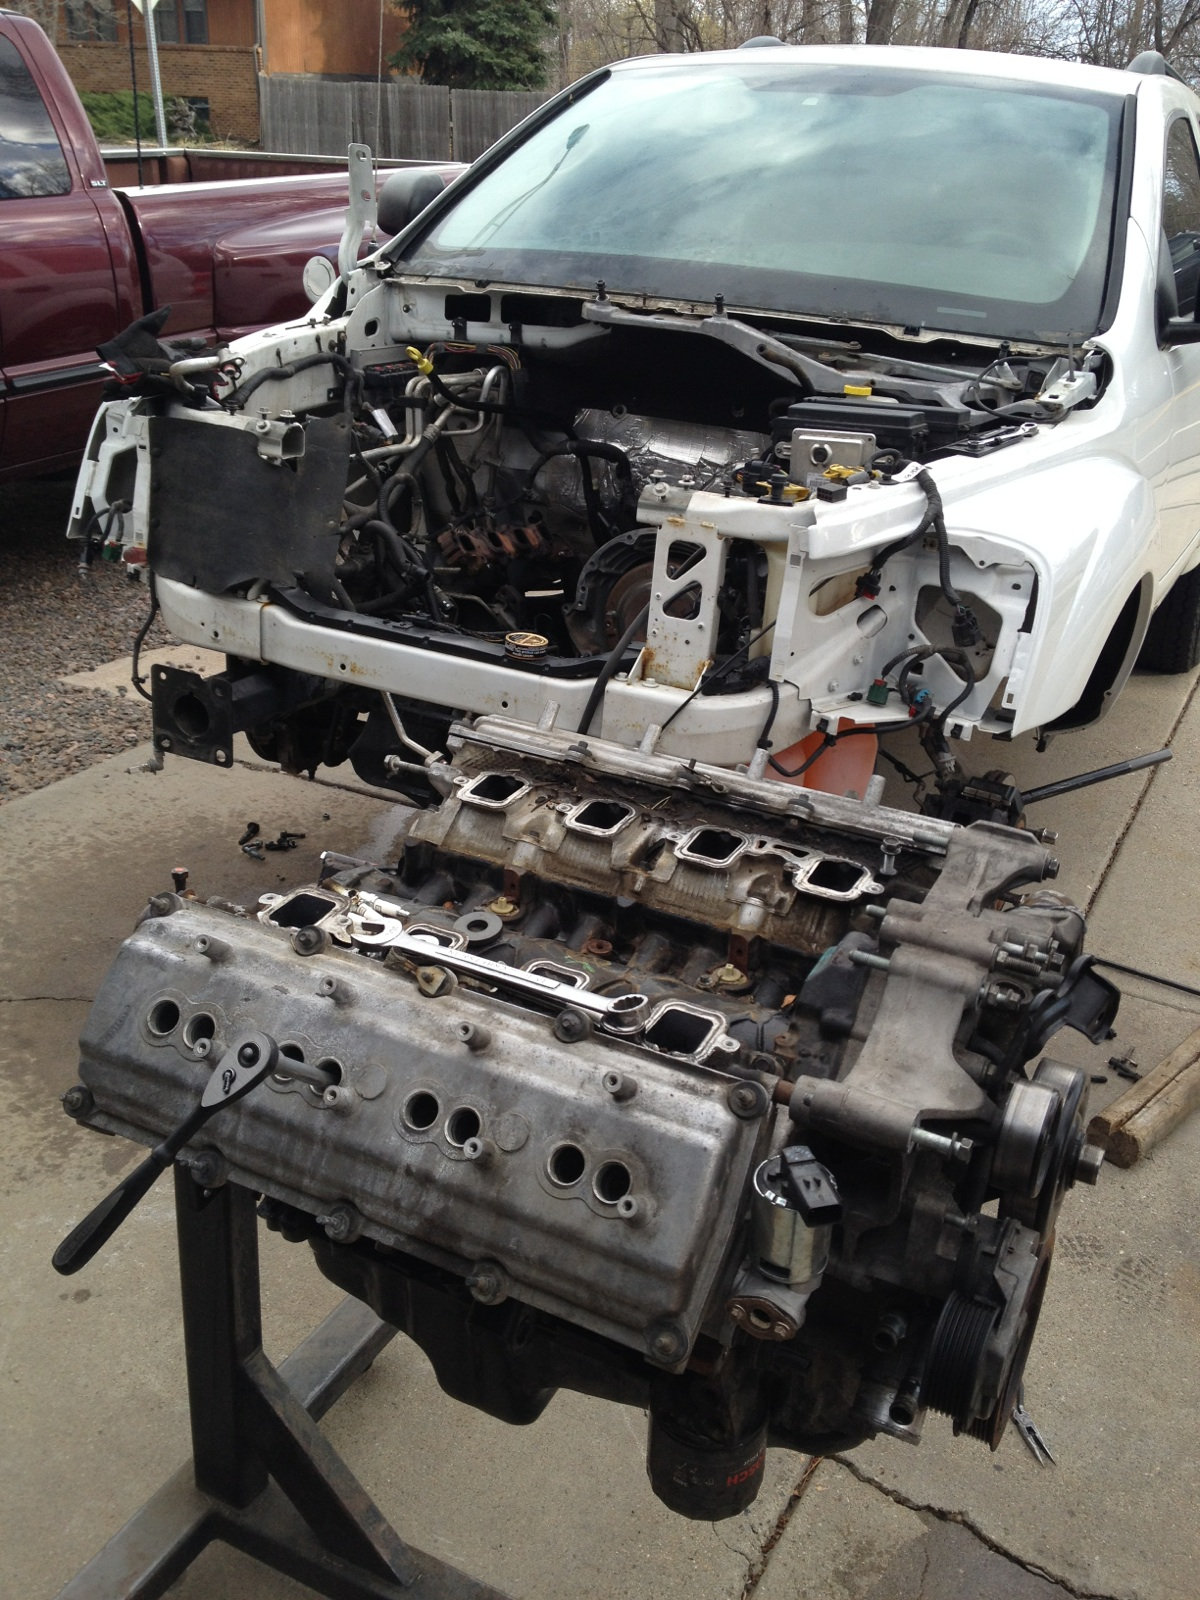 Diagram 2004 Dodge Durango 5 7 Engine Conpartment 2010 Town And Country 3 8 Engine Diagram Basic Wiring Tukune Jeanjaures37 Fr